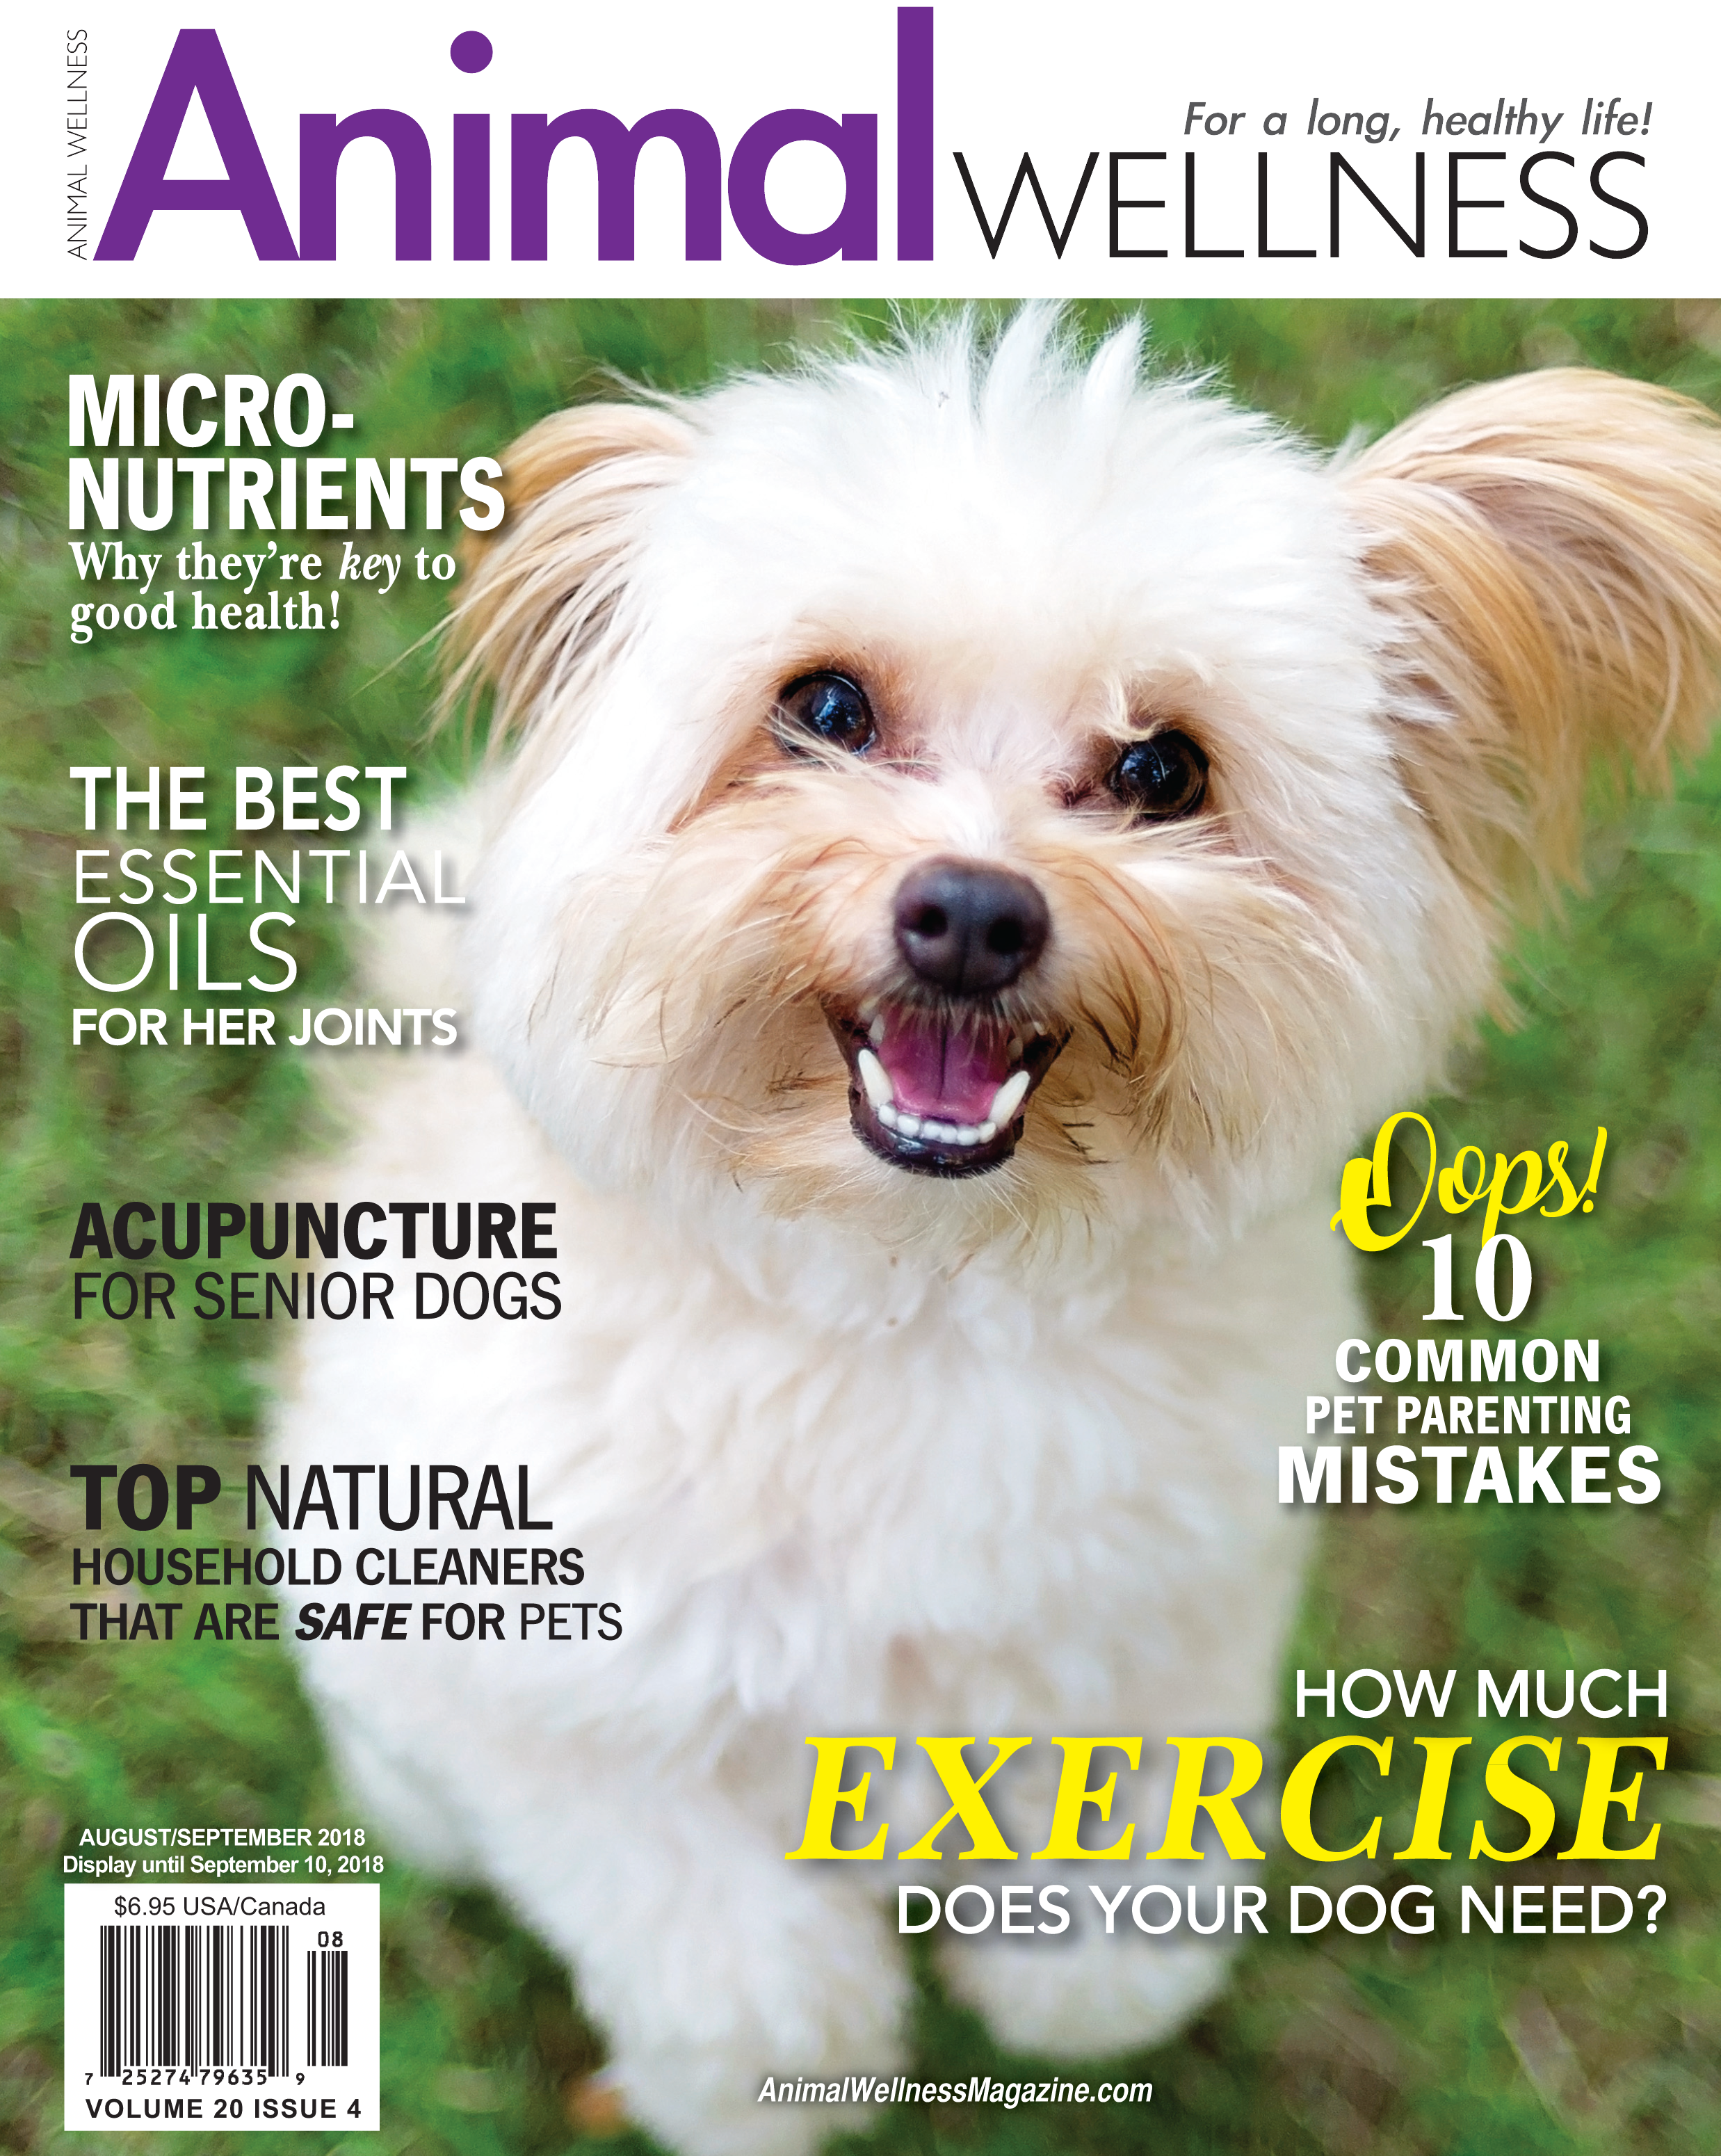 Giving your dog affection the right way | Animal Wellness